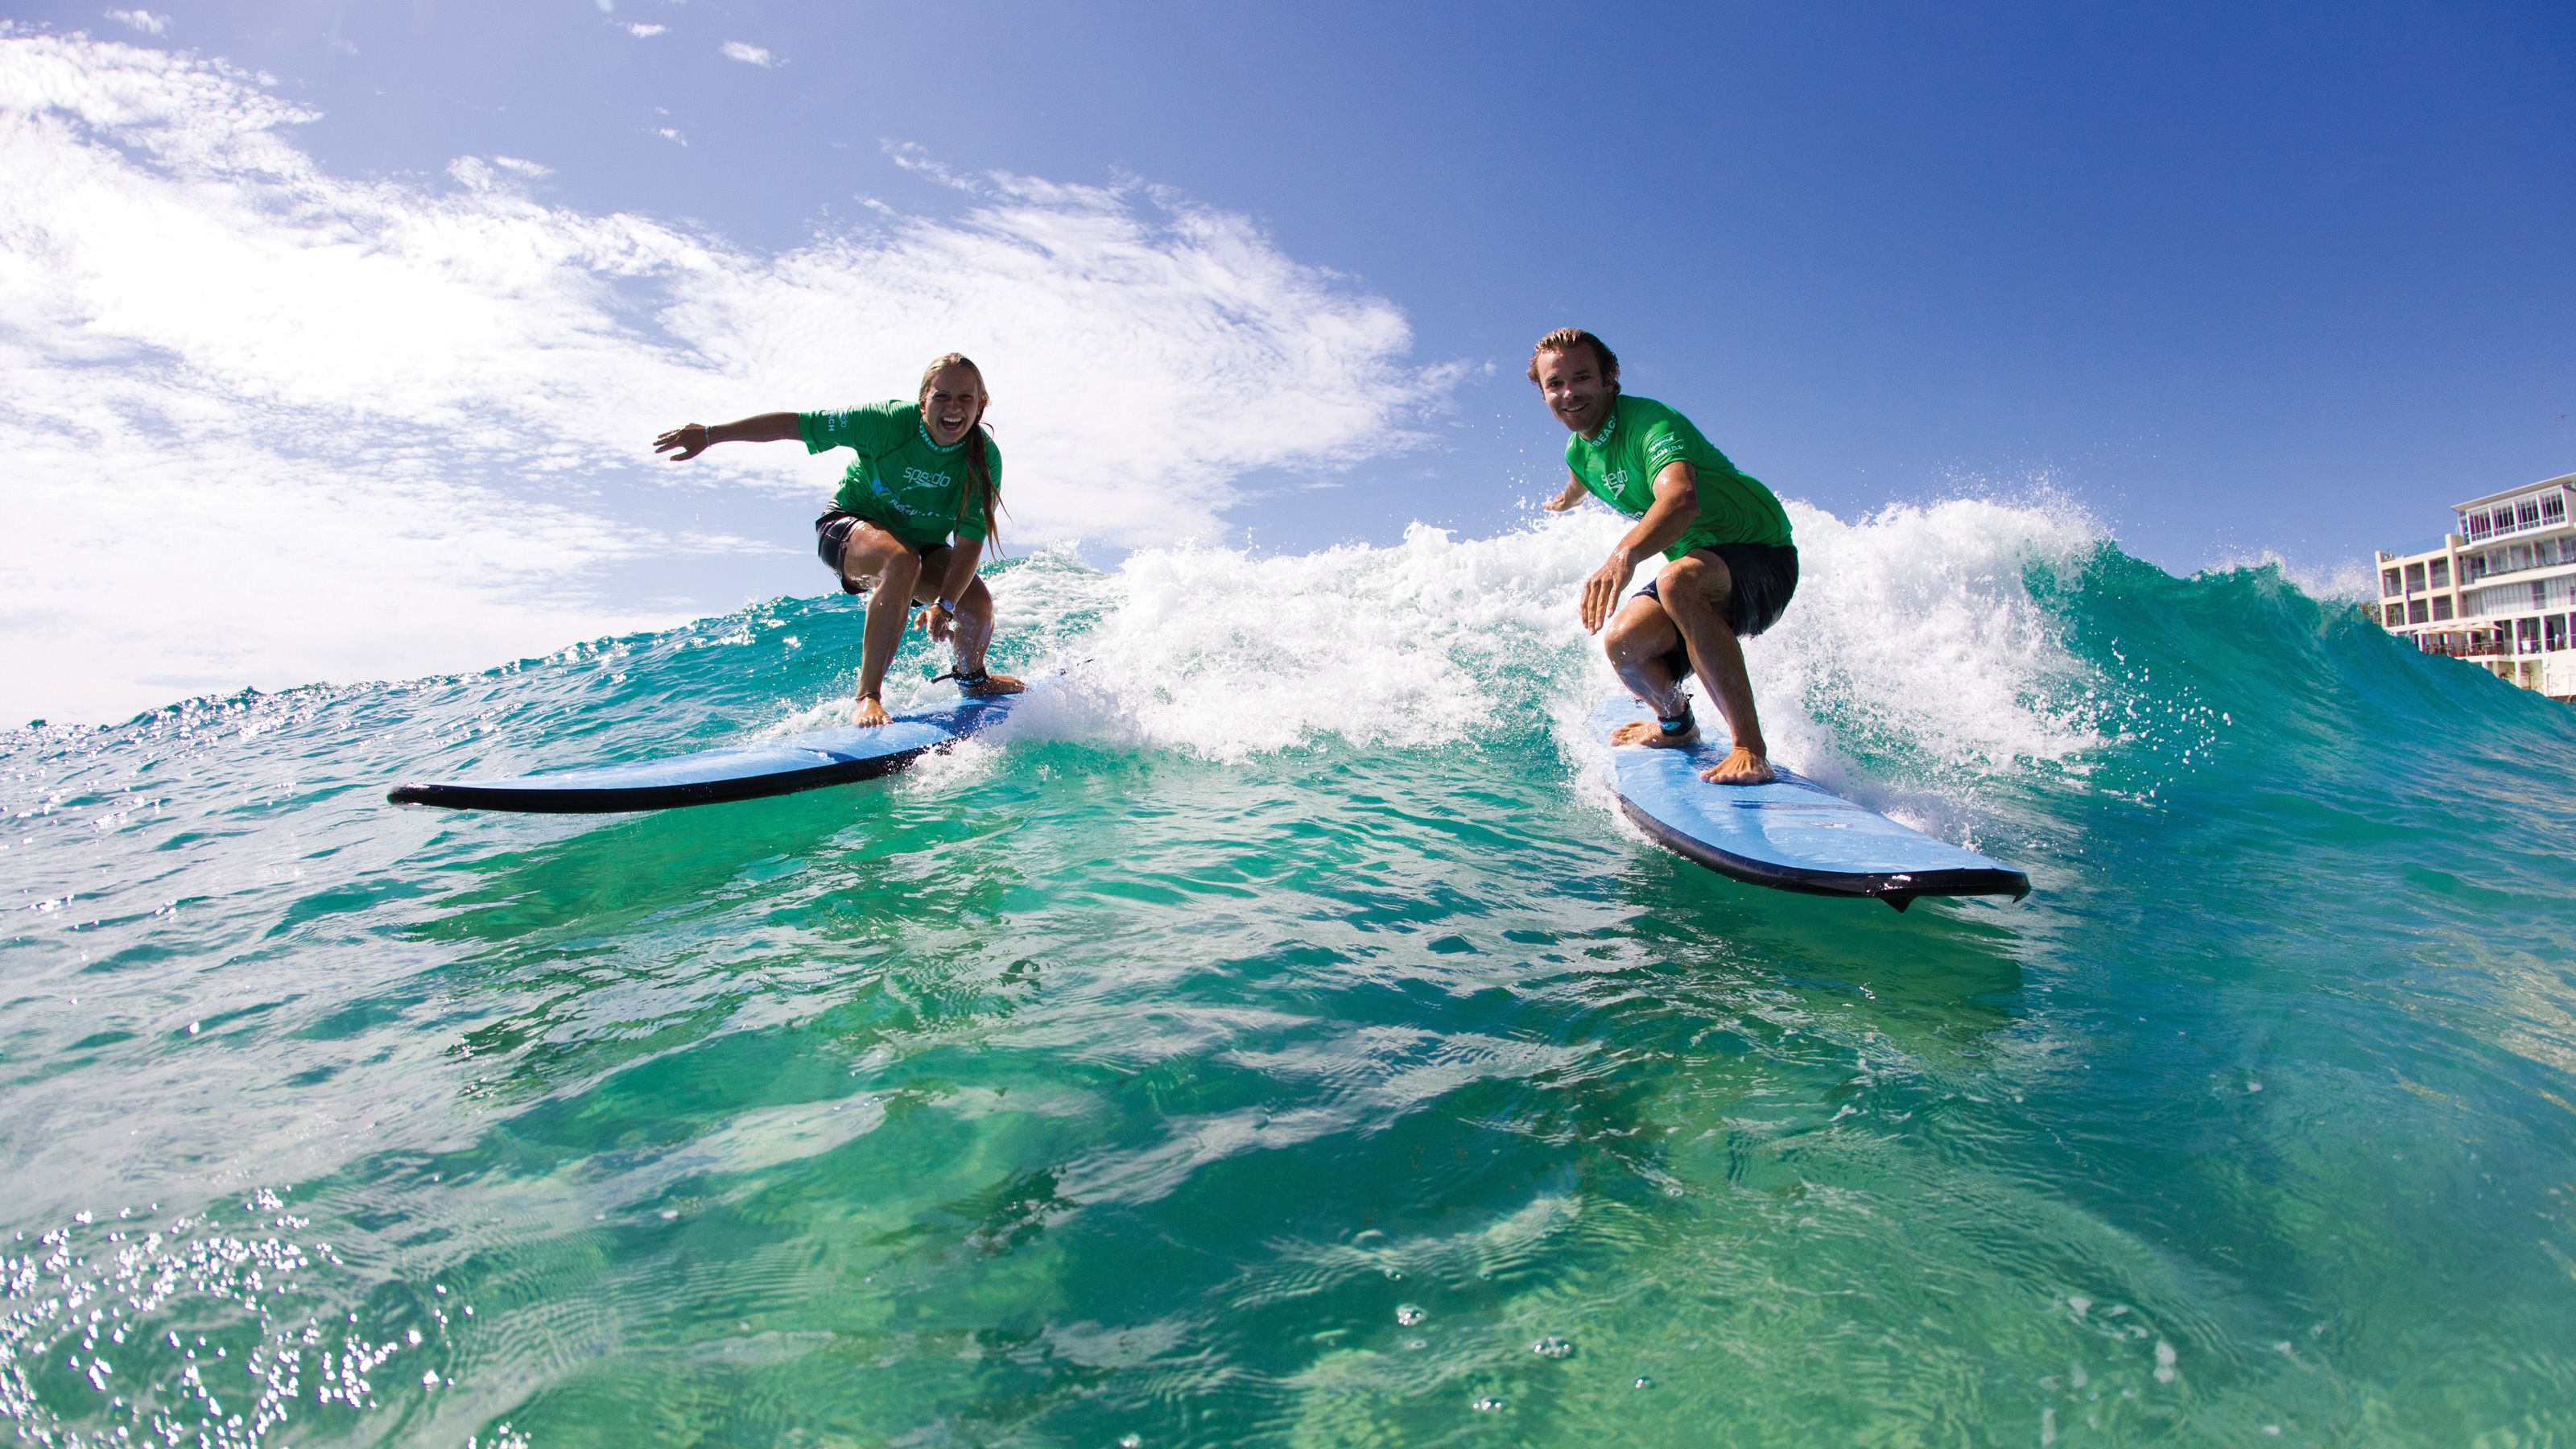 Two surfers making waves on Bondi Beach on a wonderful clear day